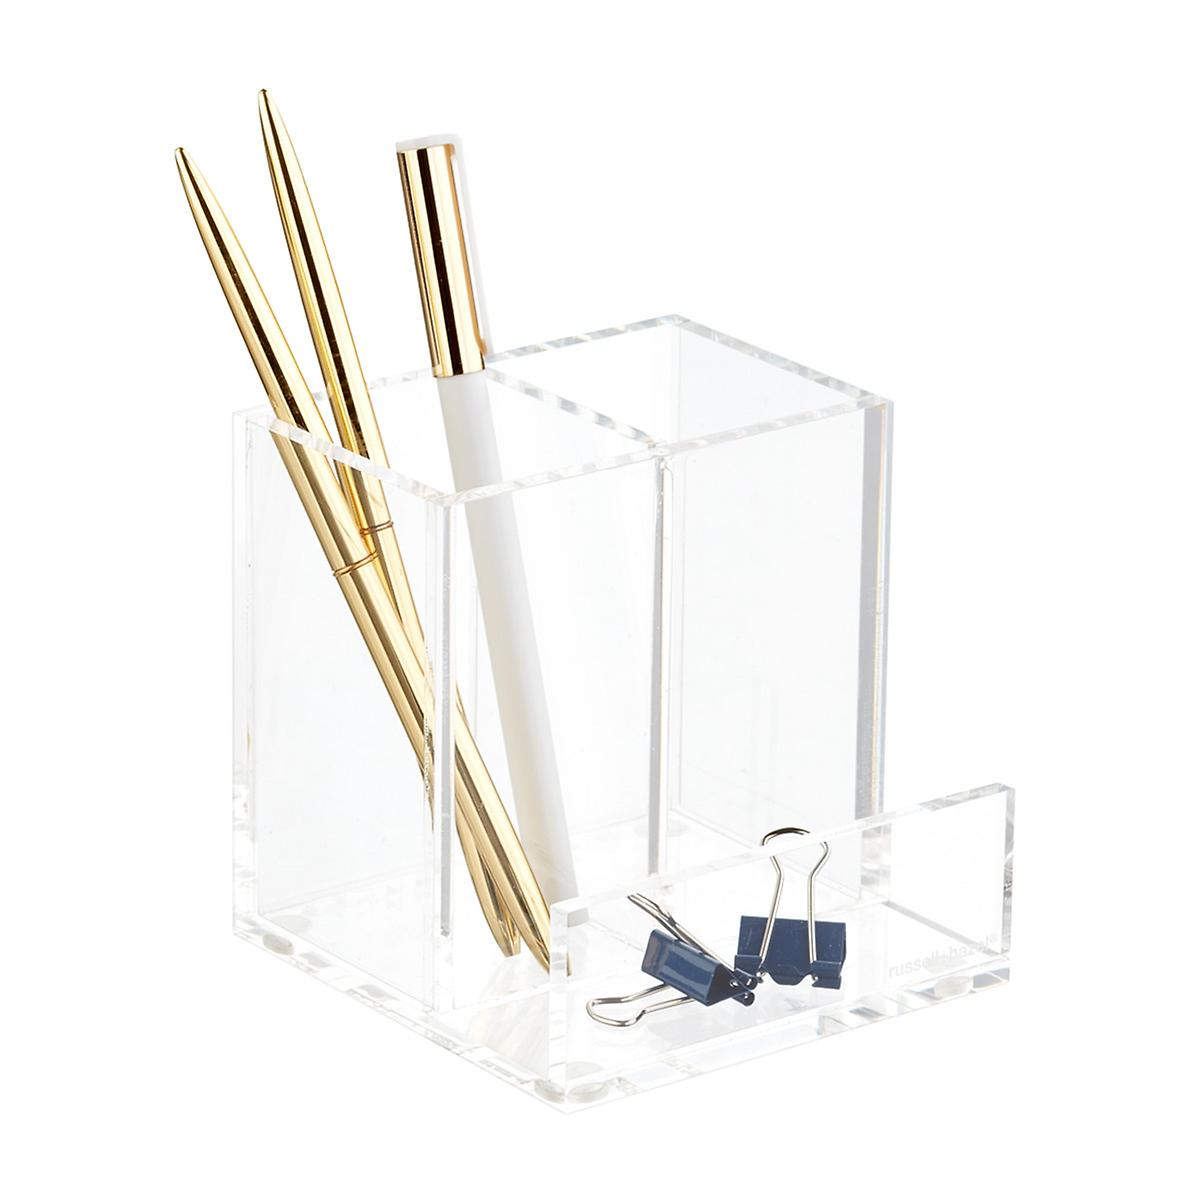 Russell Hazel Clear Pencil Cup & Card Organizer